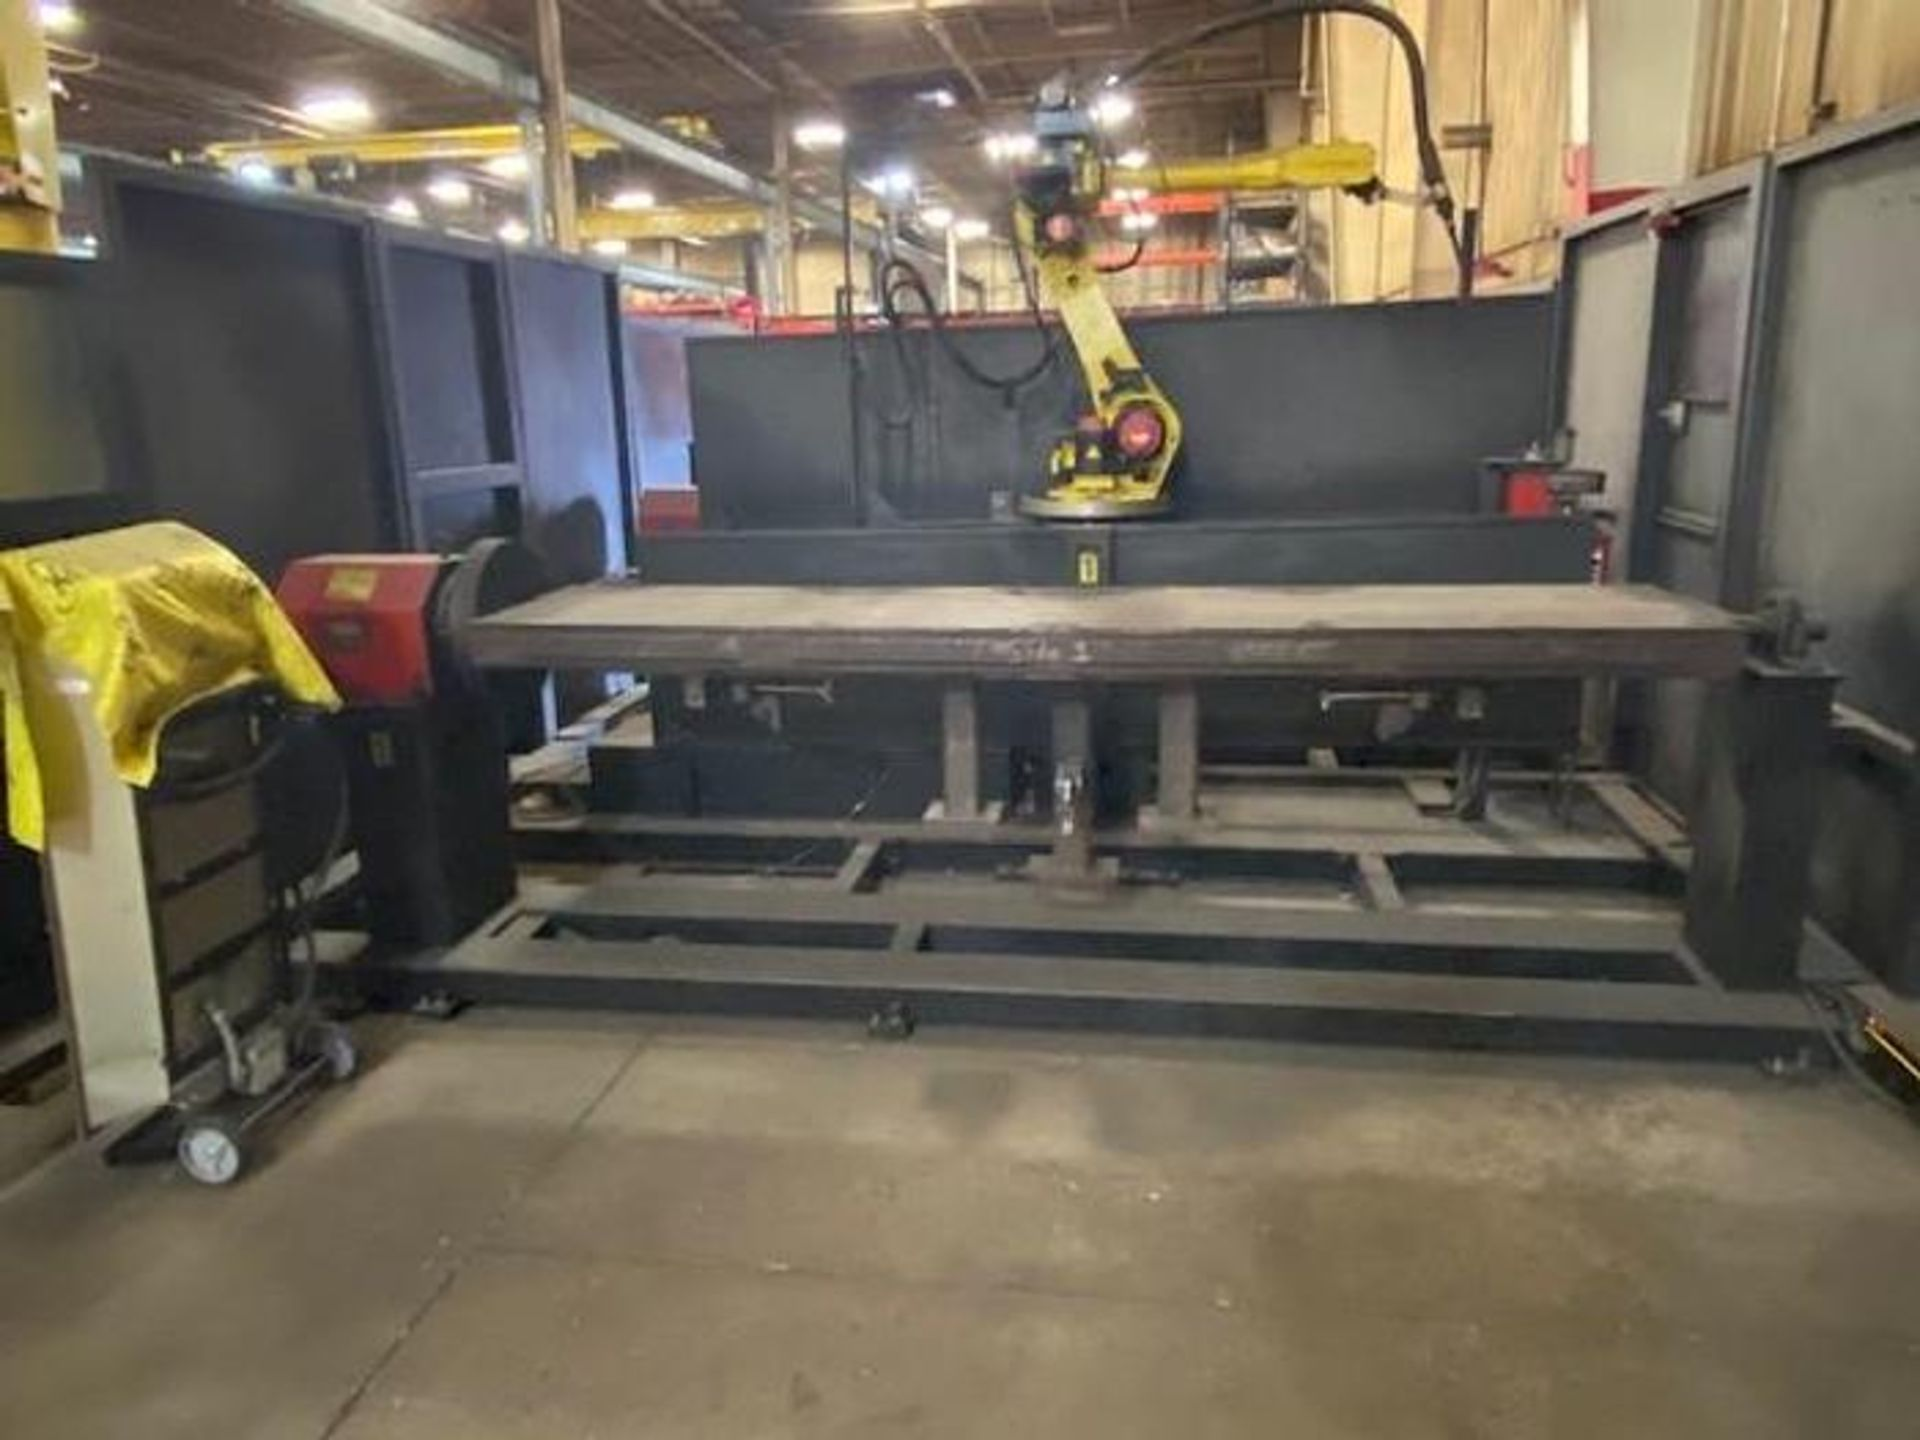 FANUC/LINCOLN DUAL TRUNION WELD CELL, FANUC ROBOT ARCMATE 120iB/10L WITH R-J3iB CONTROL